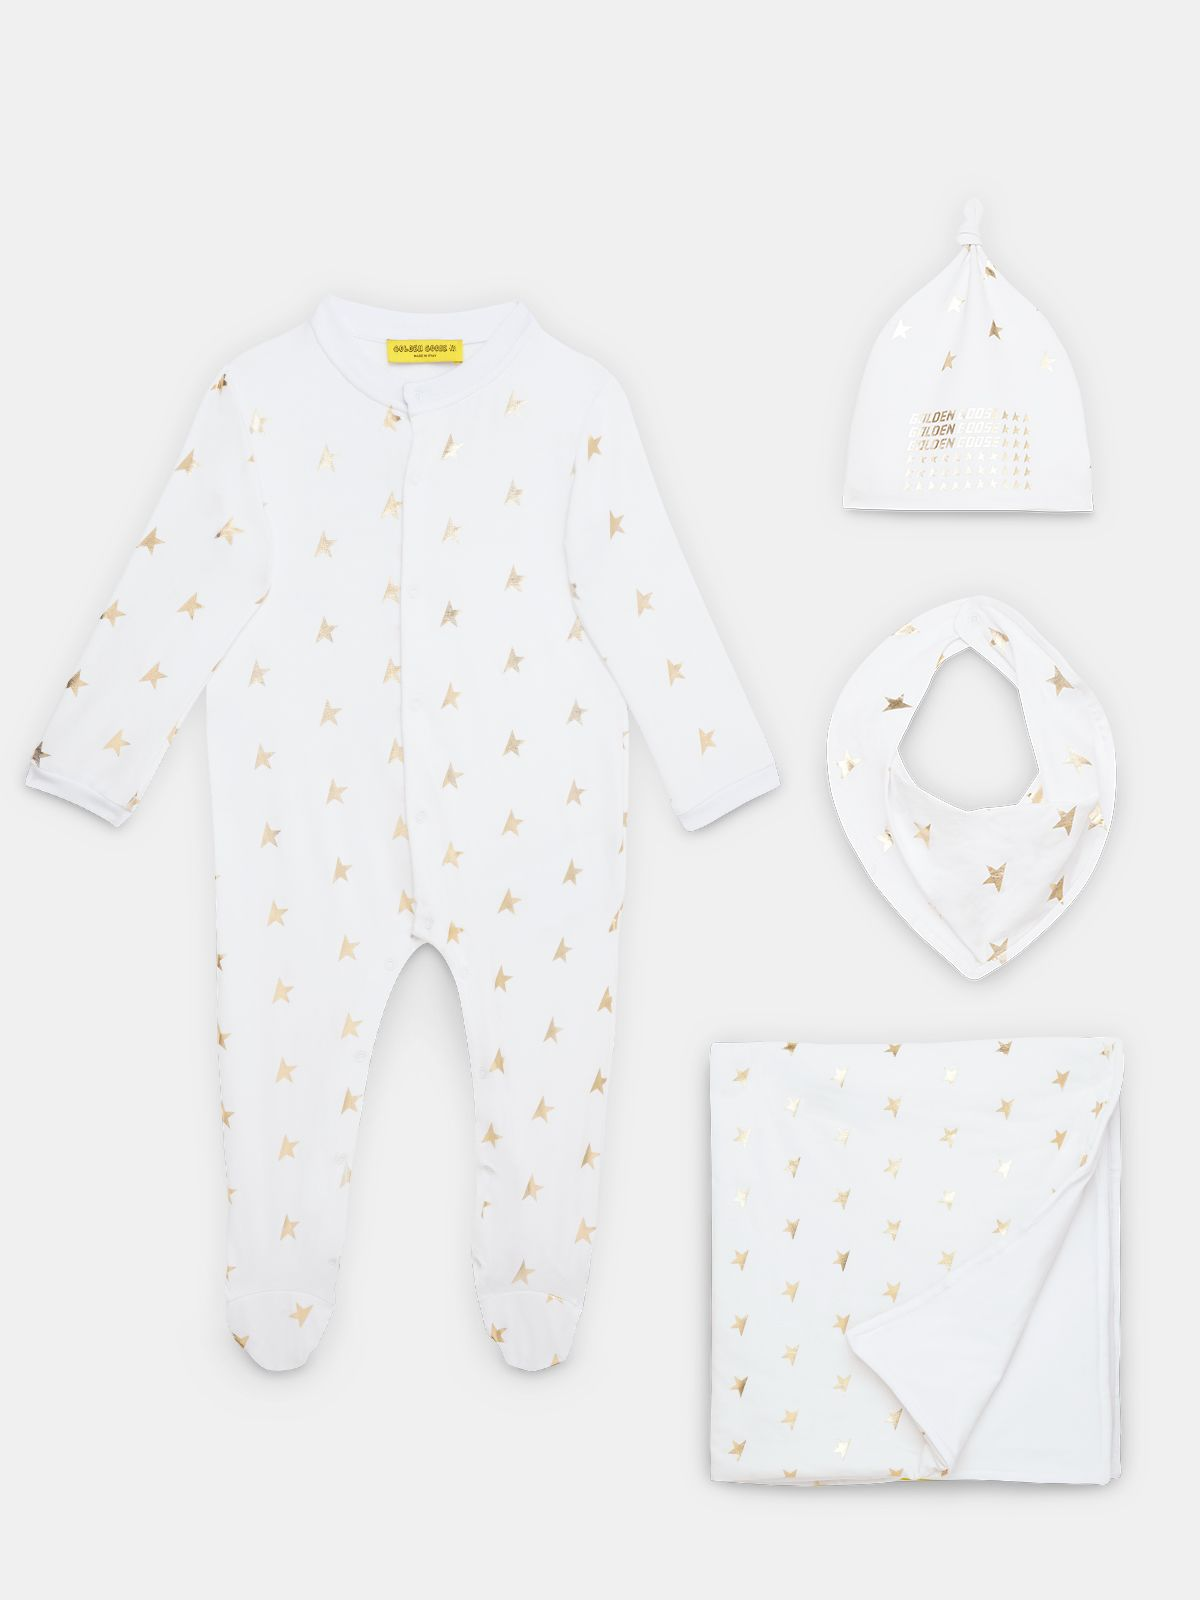 Golden Goose - Babies' gift set with gold stars in